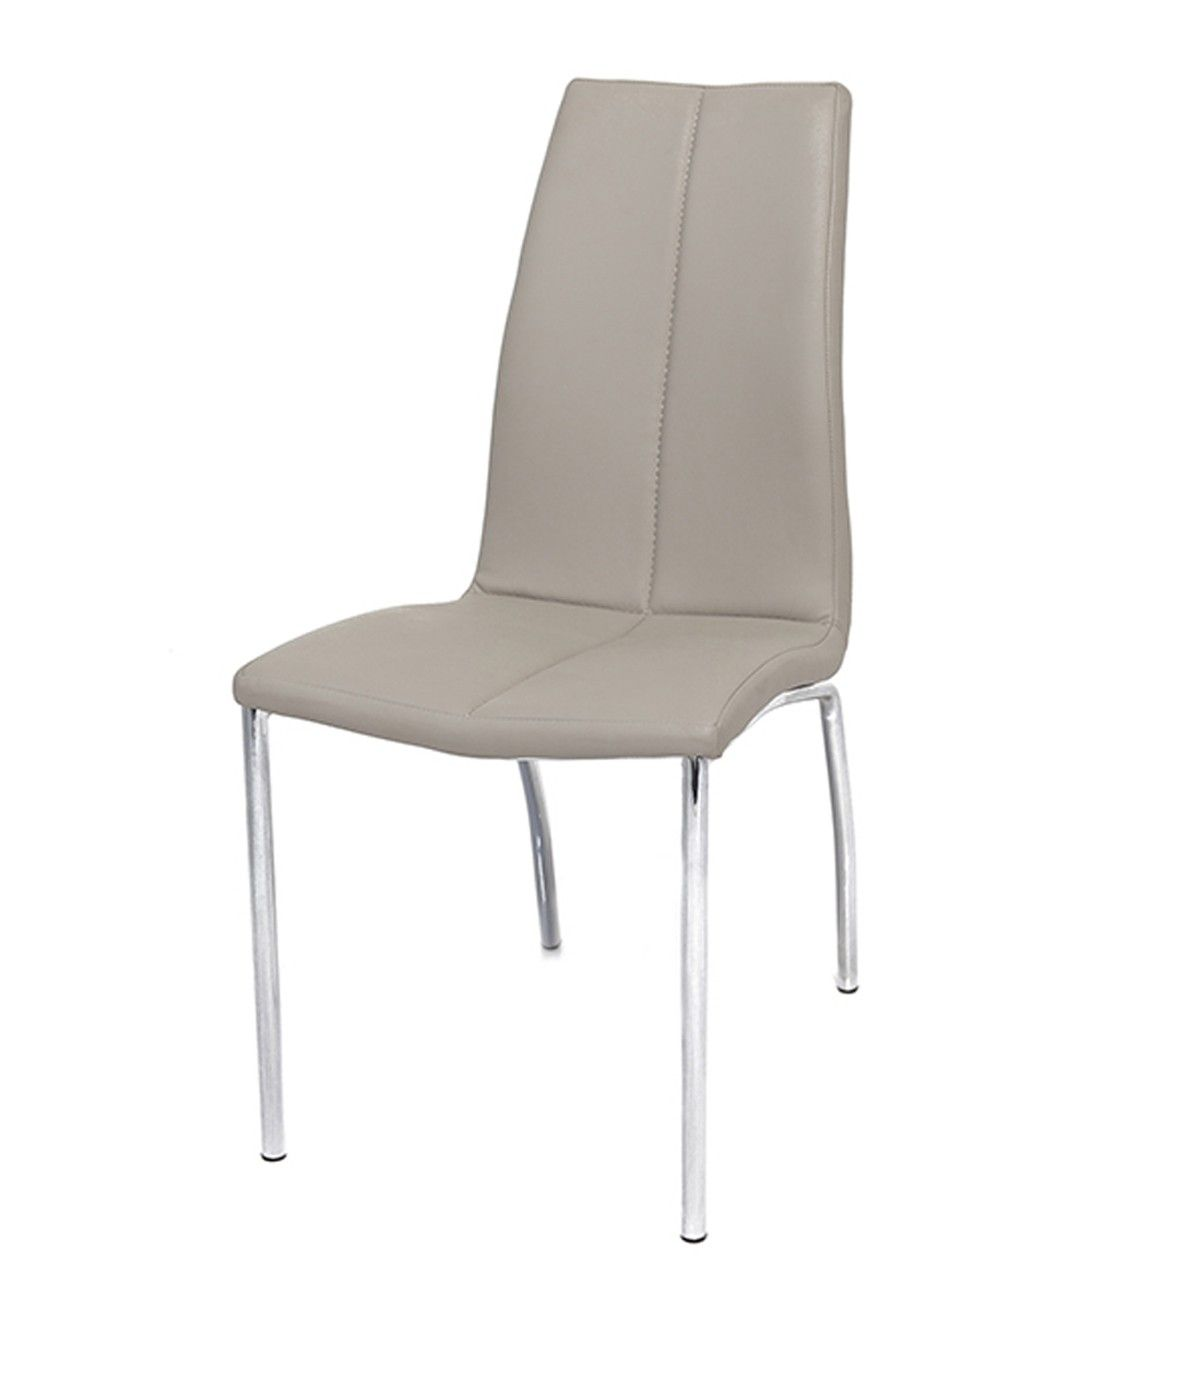 Boston Faux Leather Modern Dining Chair Mink Grey Set Of 4 Boston Upholstered Set Of 4 Mink Chairs Upholstered In A Beautiful Mink Modern Dining Chairs Dining Chairs Chair